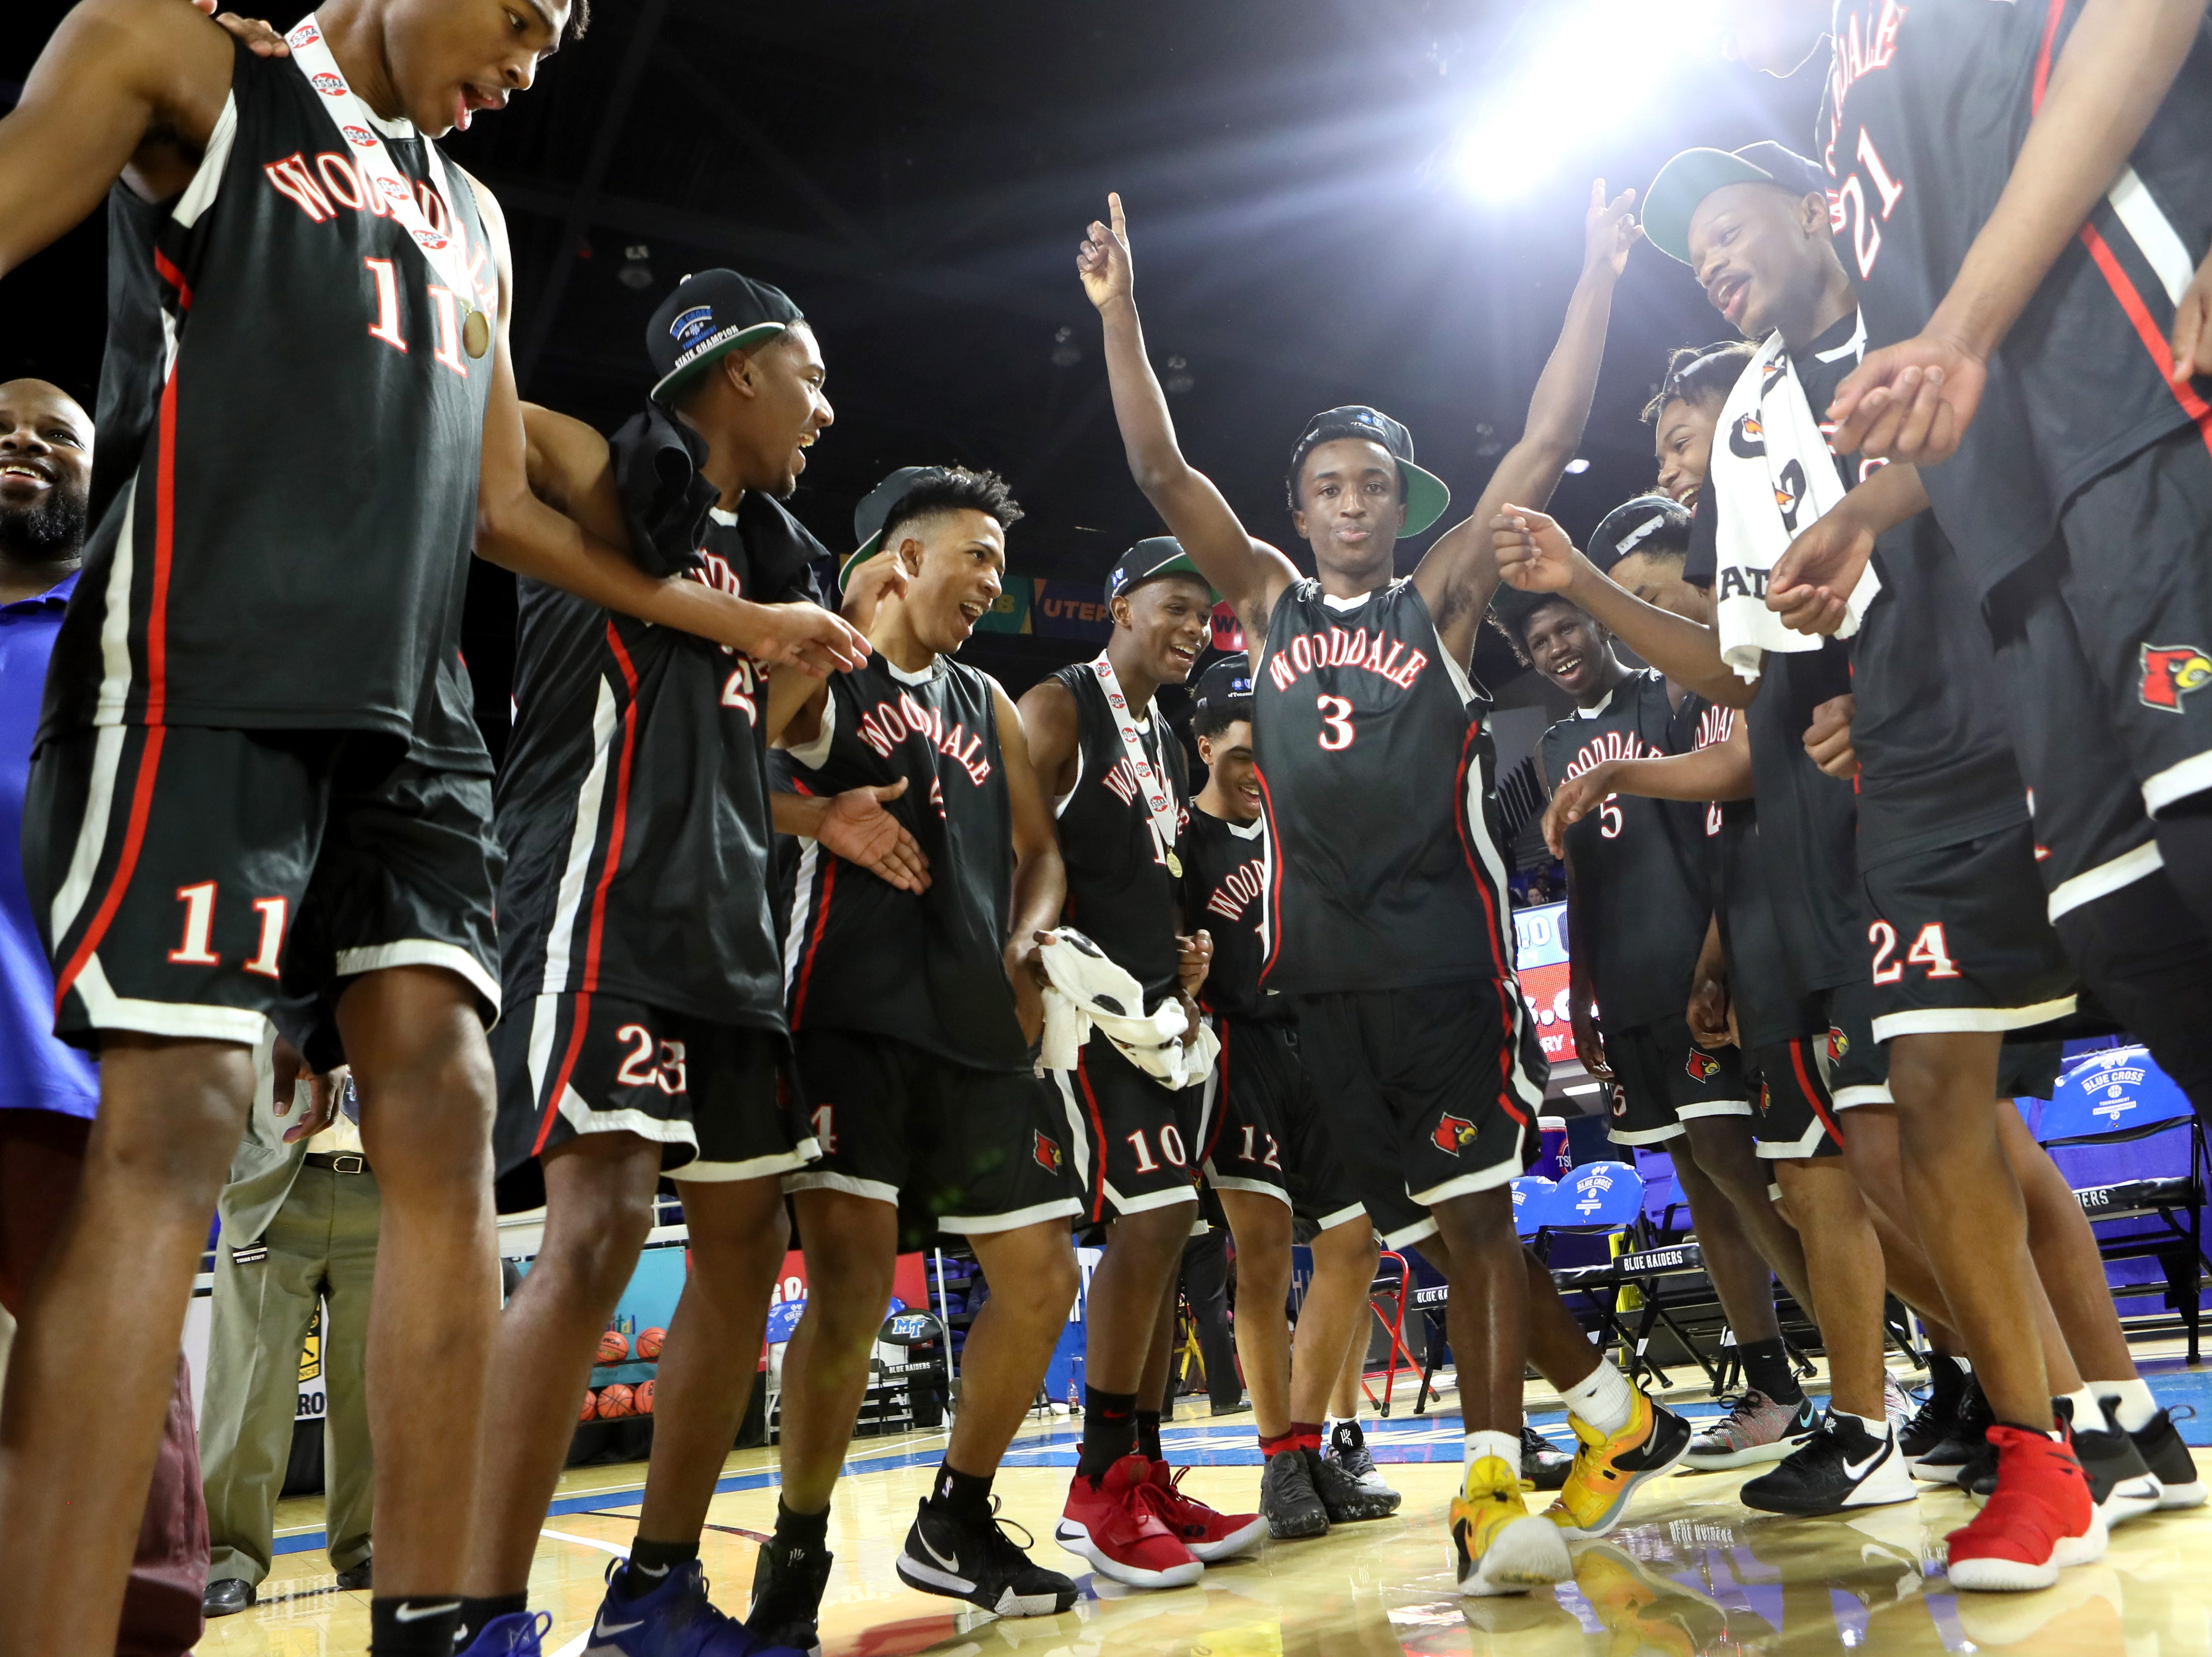 Wooddale's Alvin Miles, center, dances with his teammates as they celebrate their Class AA boys basketball state championship win Fulton at the Murphy Center in Murfreesboro, Tenn. on Saturday, March 16, 2019.